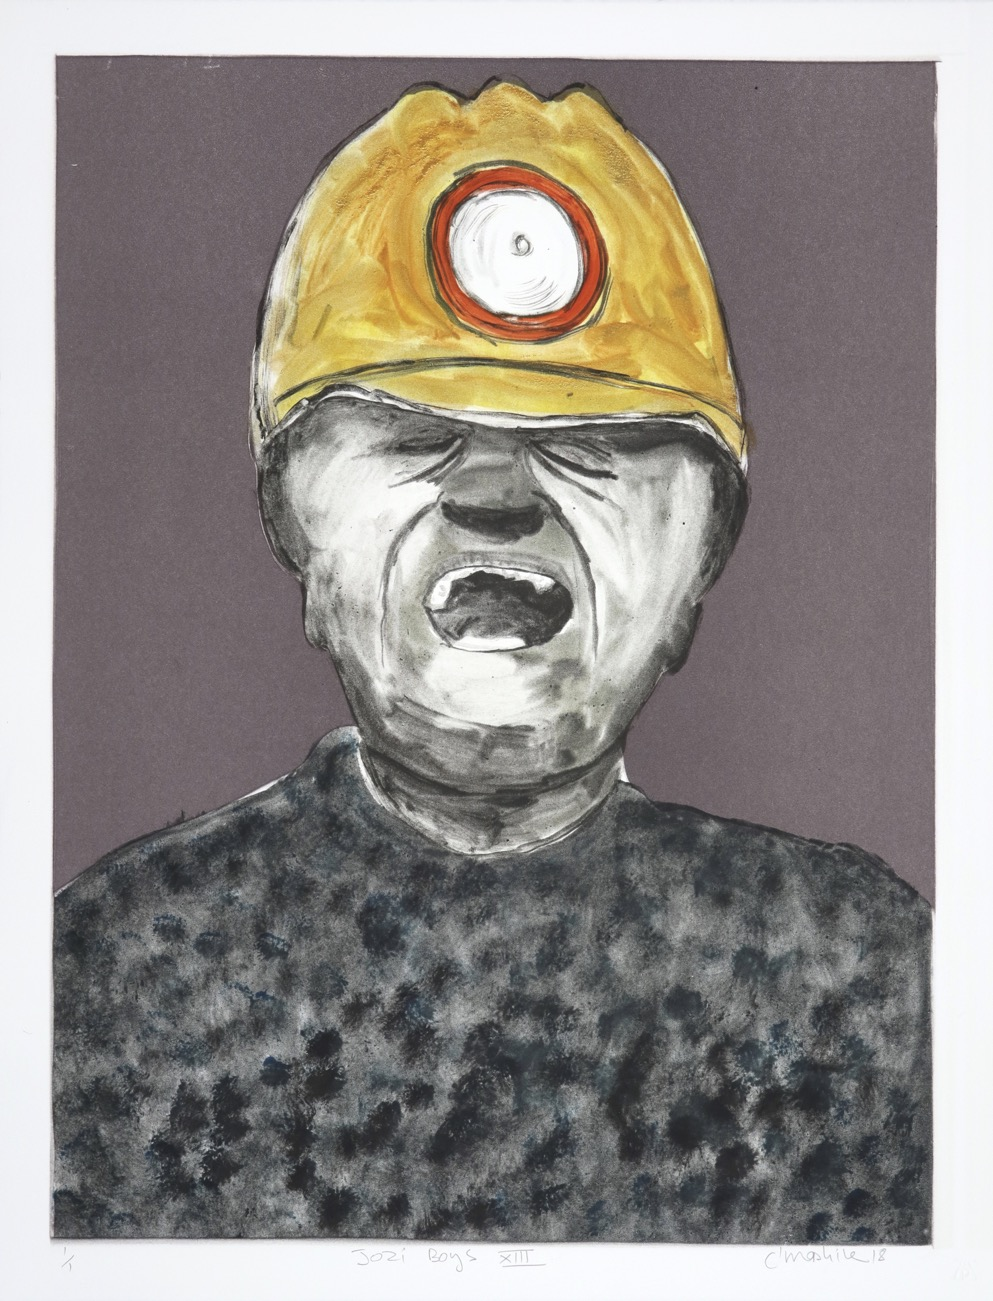 Portrait of a miner with his eyes closed and mouth open